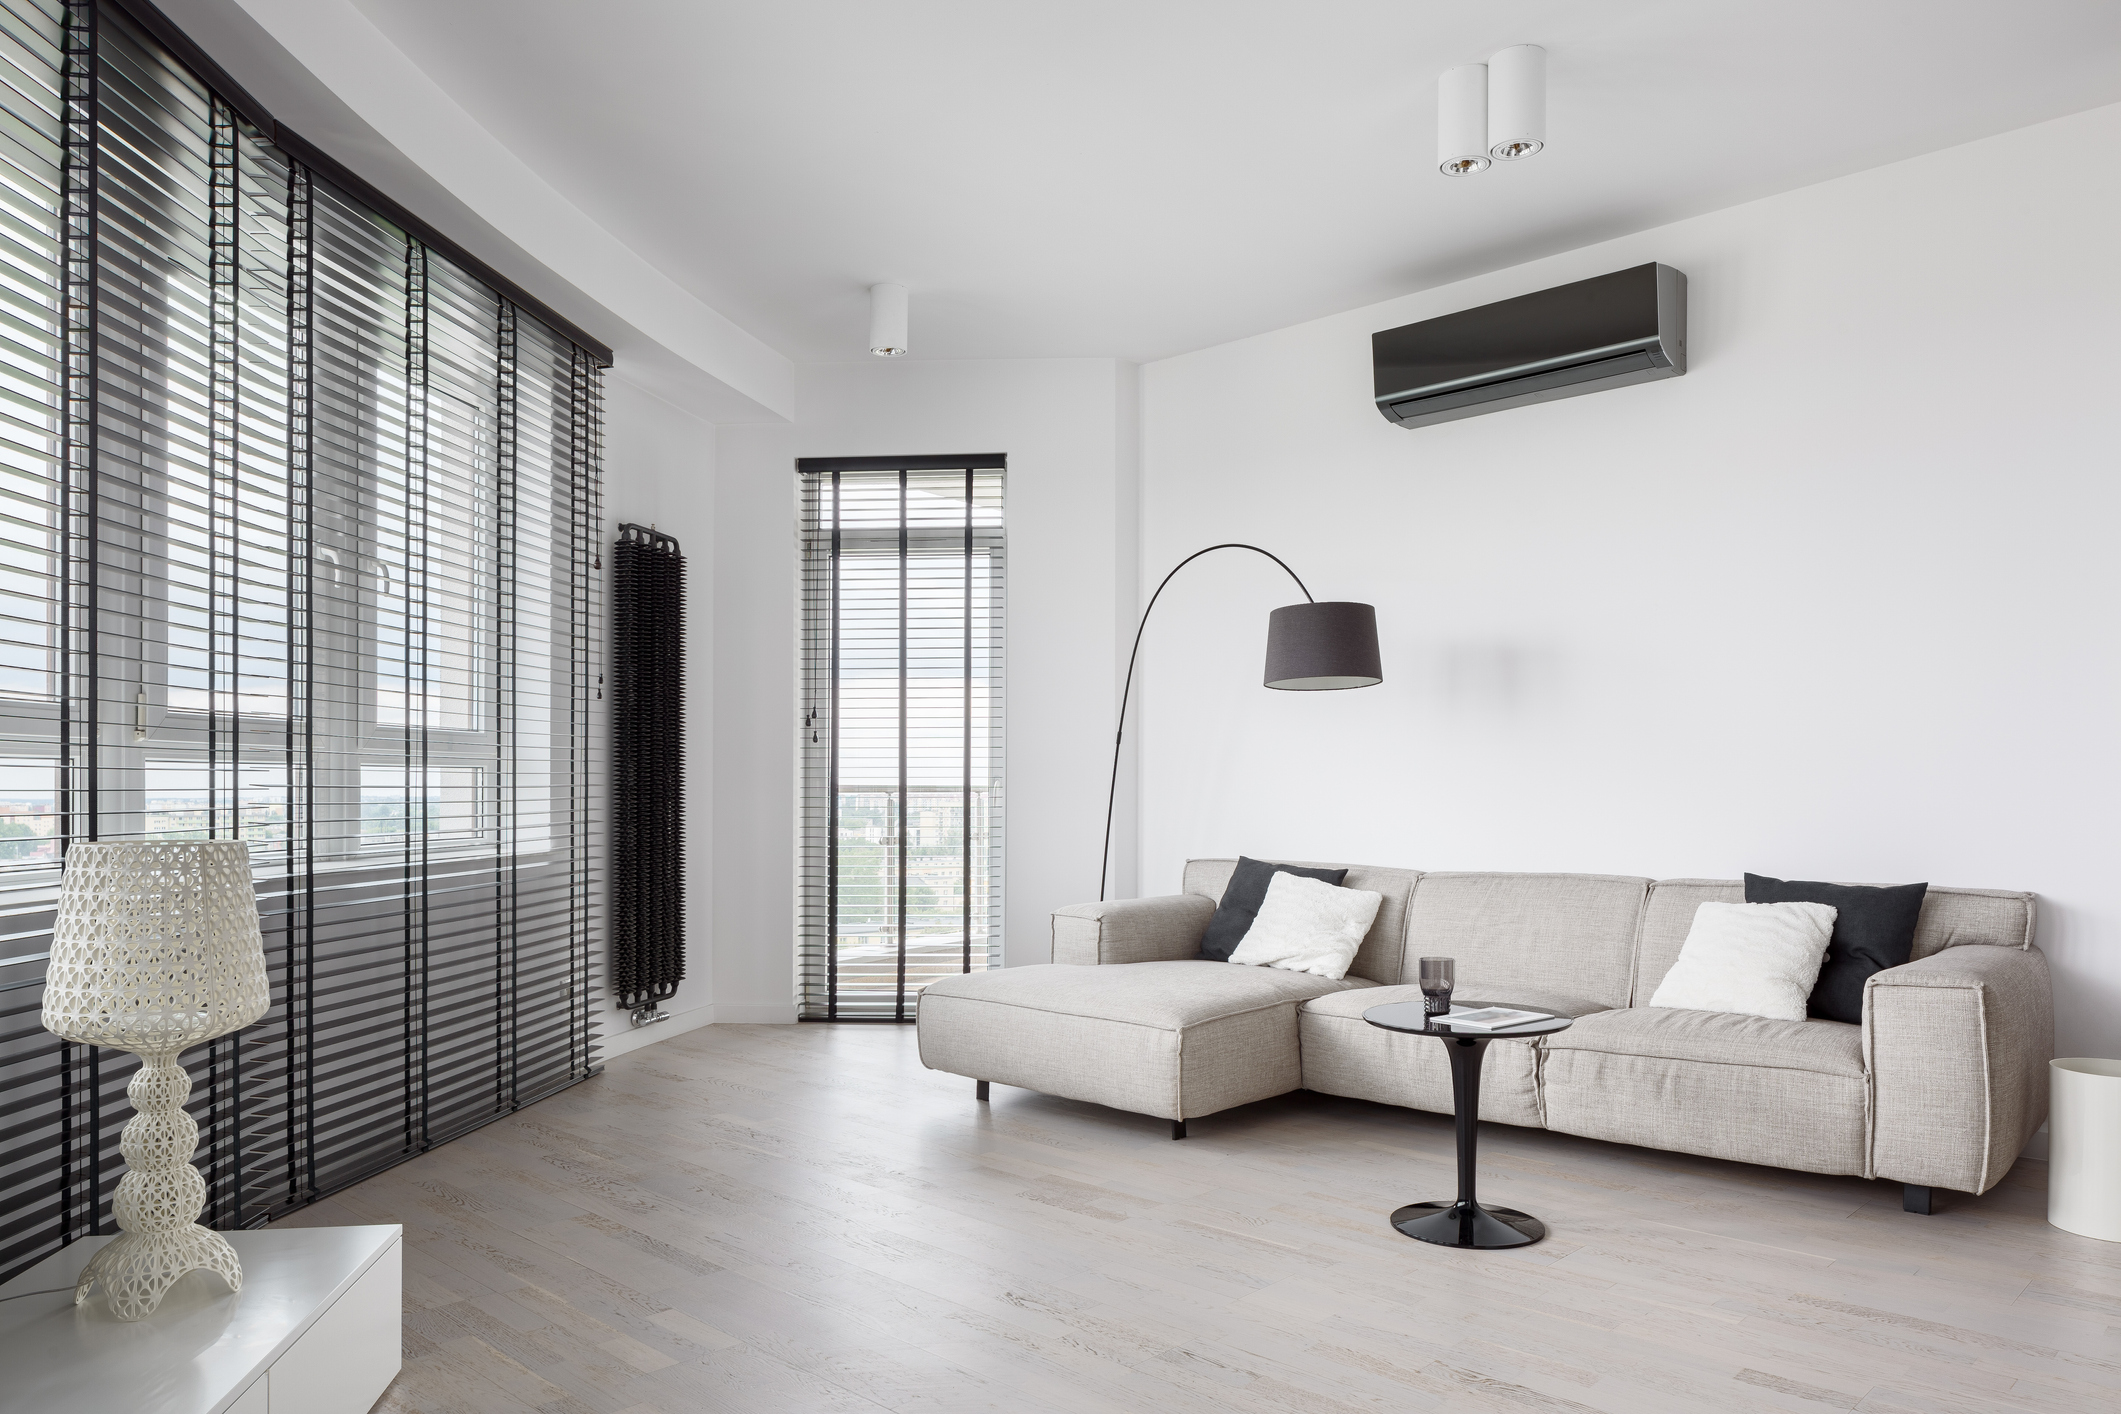 Air Conditioning Options For The Home Homebuilding